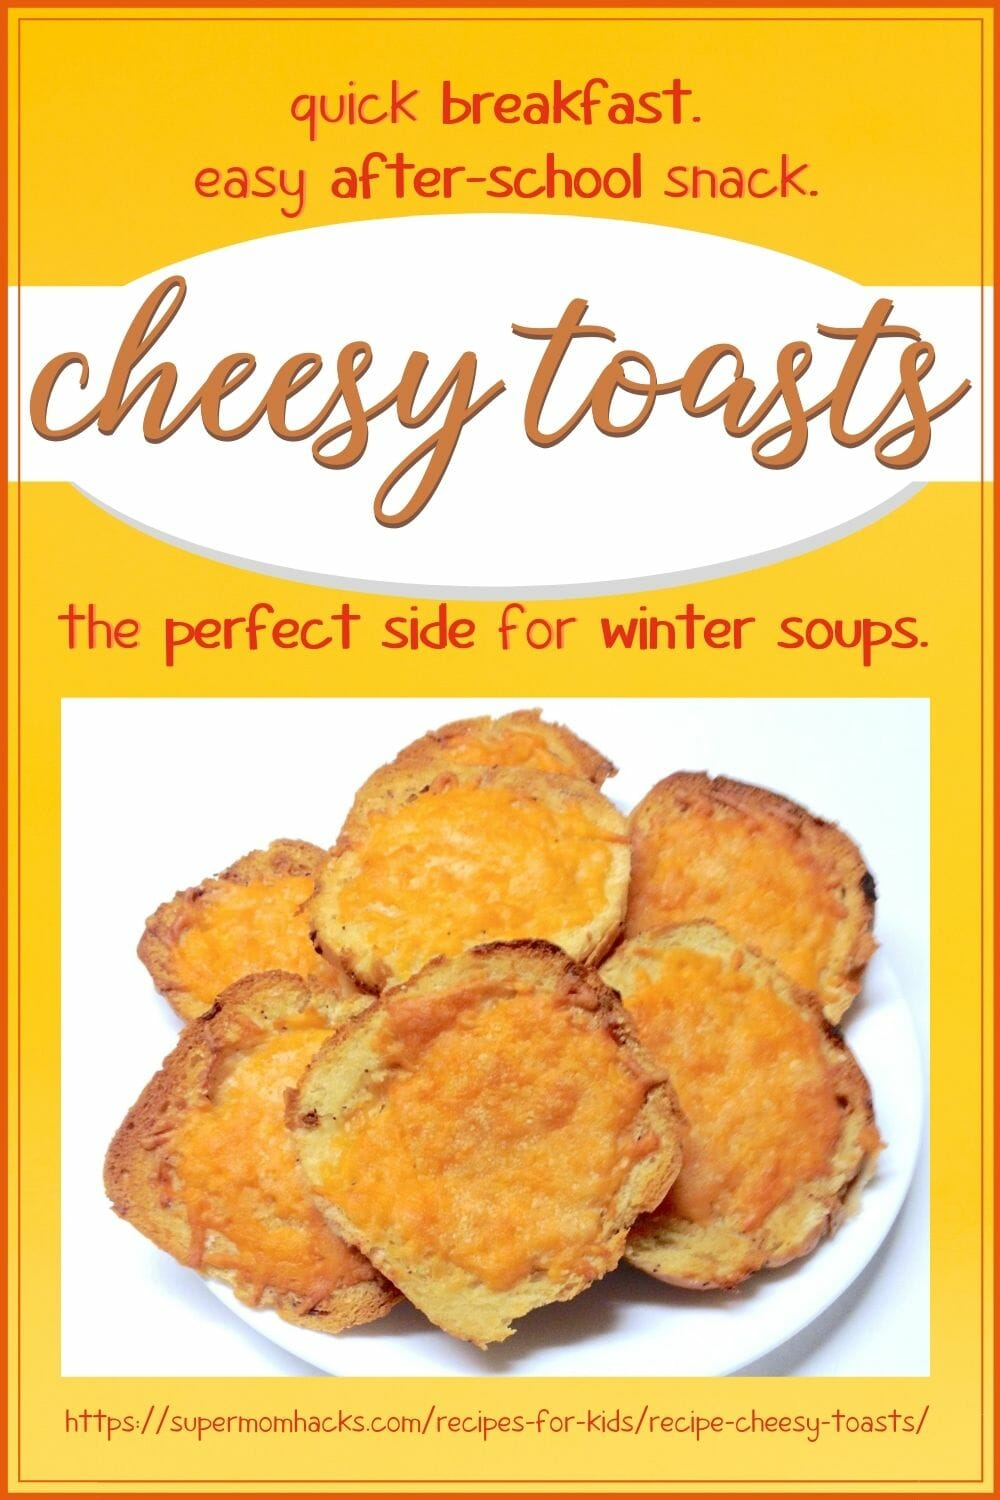 Need a quick snack for your kids on a cold afternoon? Or a perfect side for that bowl of soup? Either way, Cheesy Toasts fit the bill.